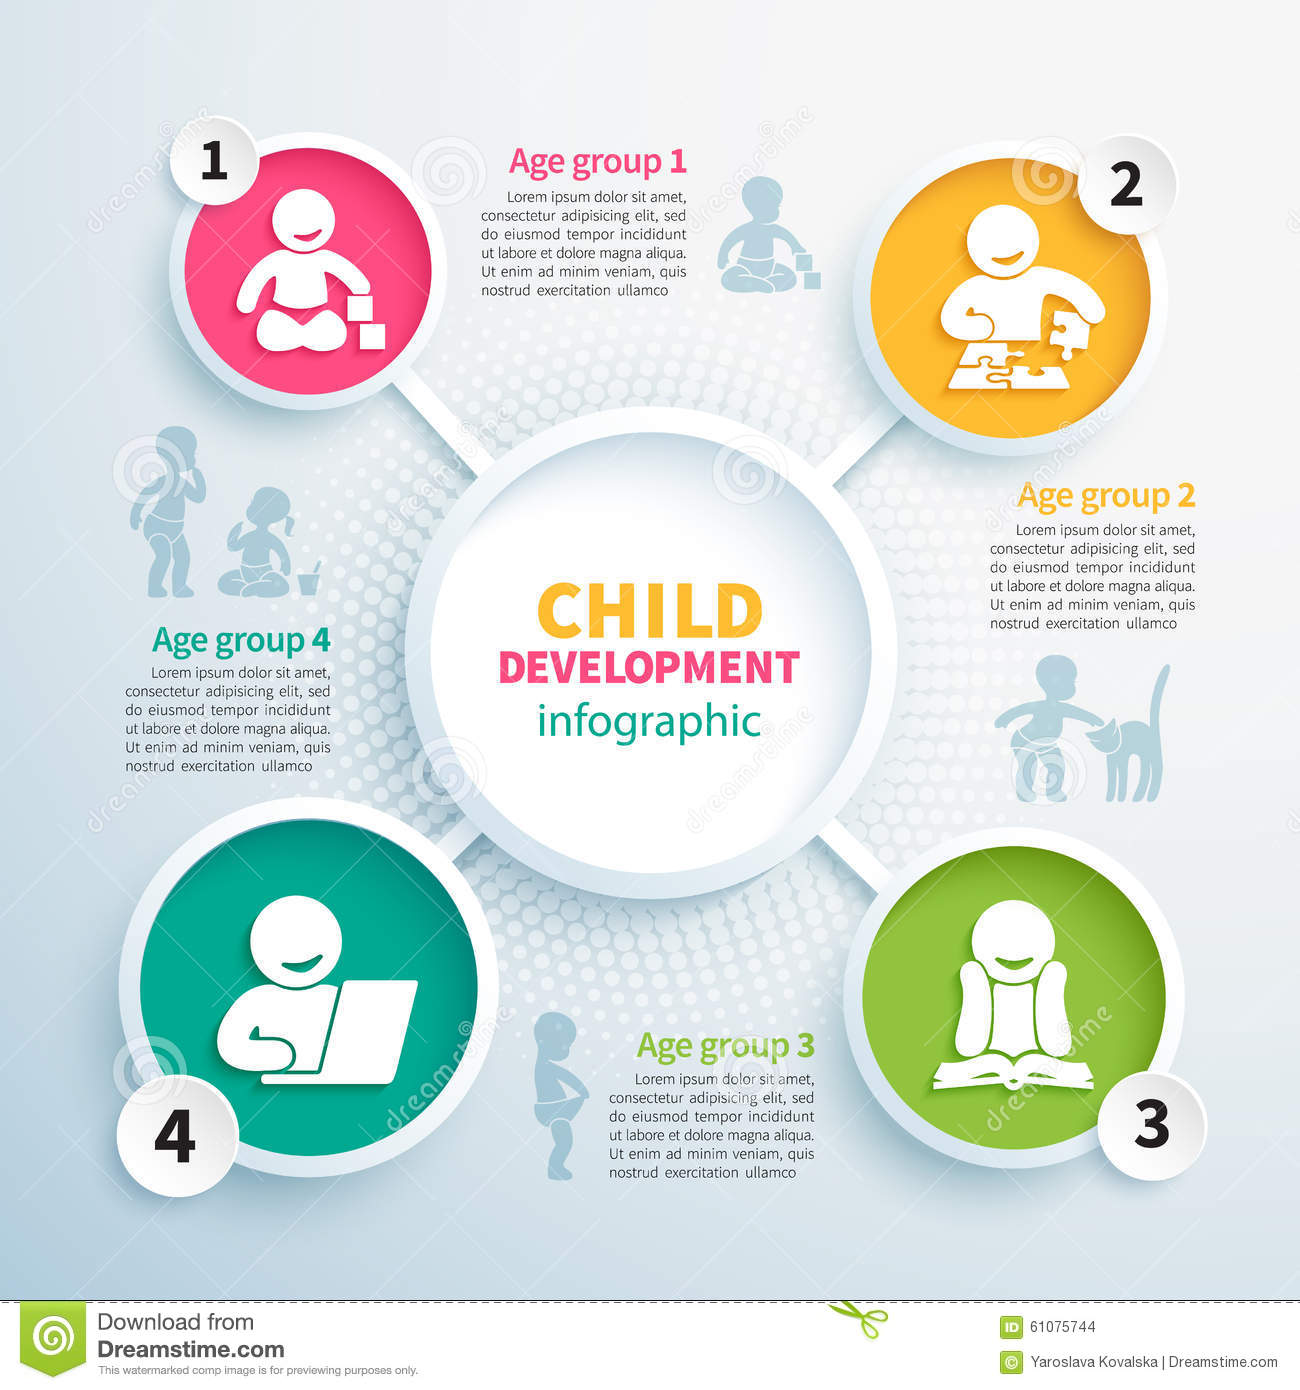 promoting an infant s development and learning Infant mental health practice refers to the promotion of optimal development and   world, to learn, to cope and problem solve, and to continue positive  development  imhp is dedicated to promoting optimal mental health outcomes  for infants.